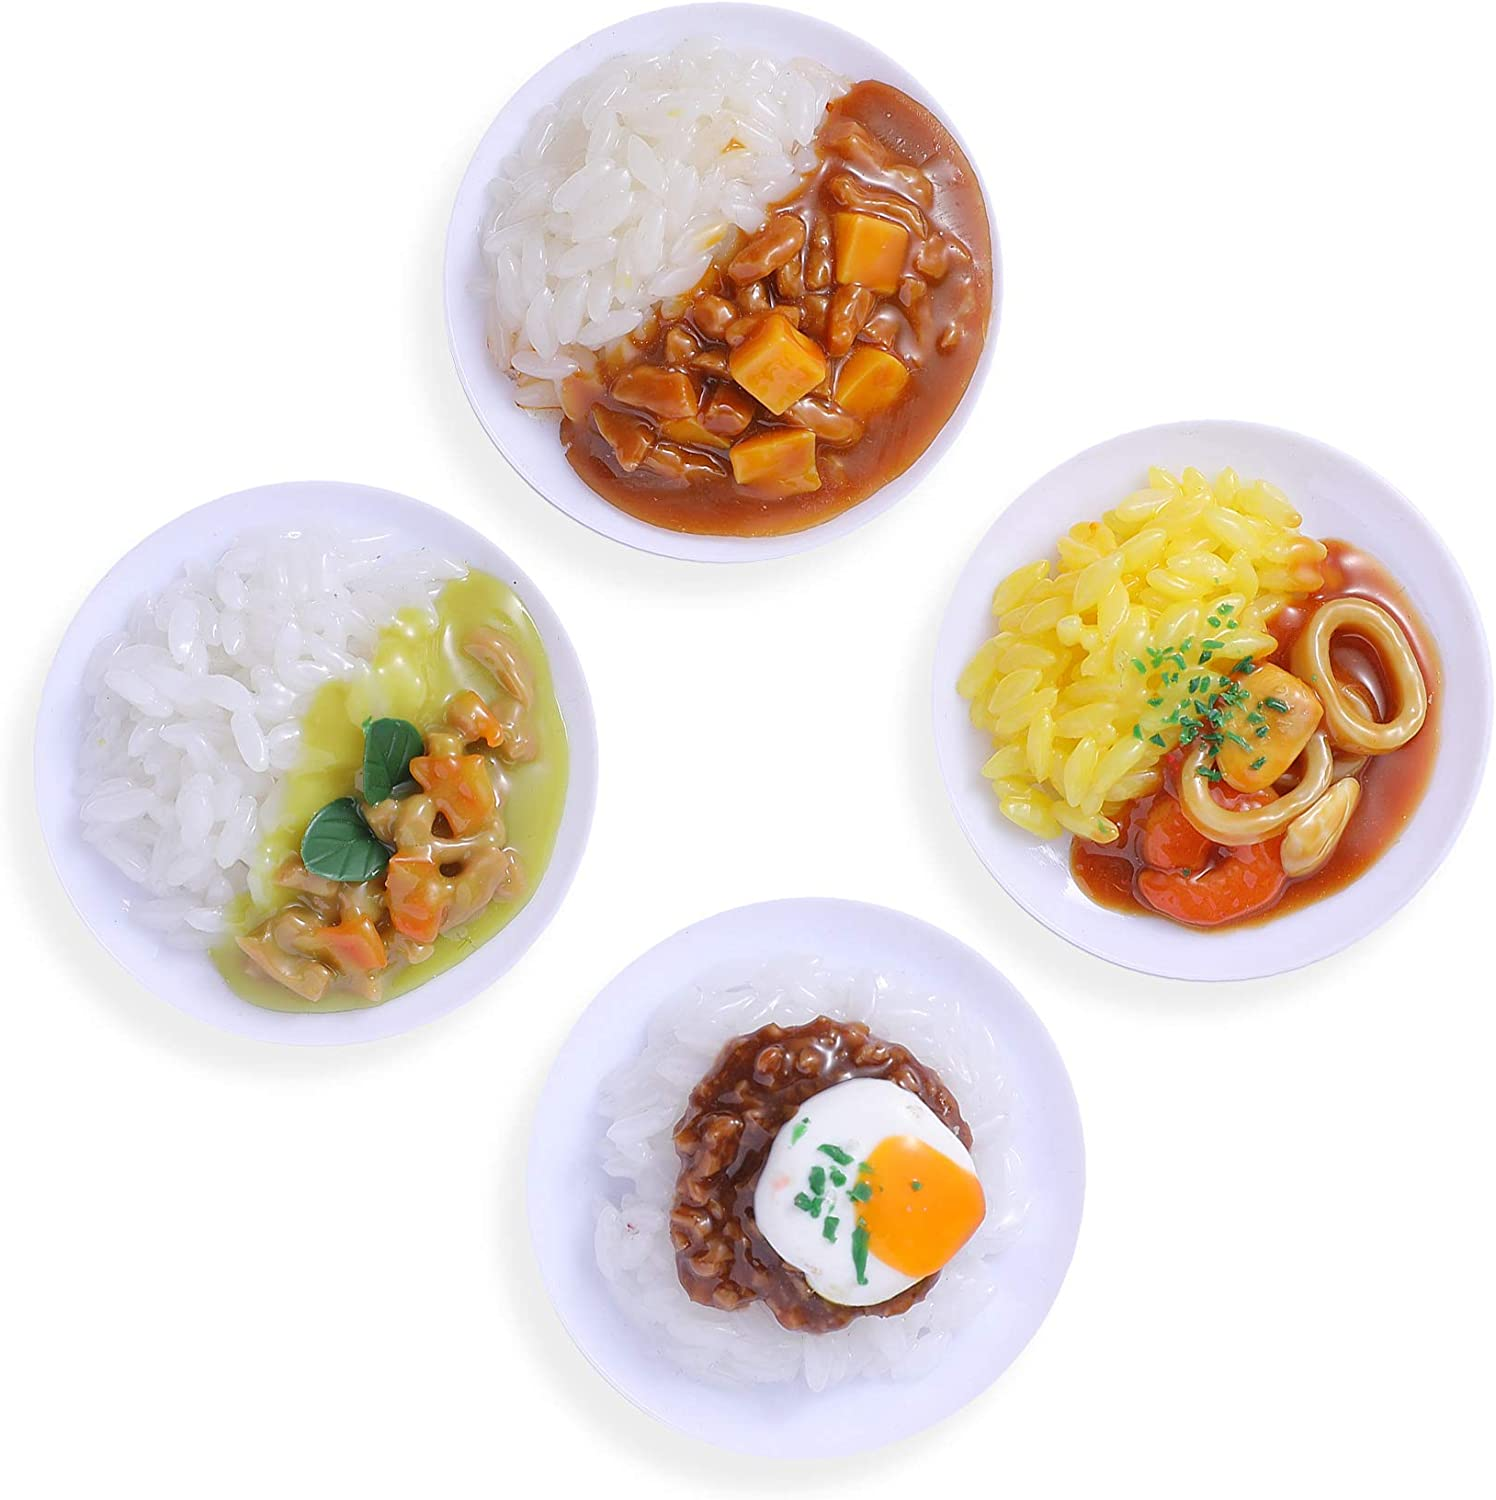 Hey Foly Cute Refrigerator Magnets Funny Magnets for Fridge, Simulation Rice Bowl Refrigerator Magnet, Fine for Whiteboards, Maps and Home Decoration Magnetic Objects and Even Simulating Food Games